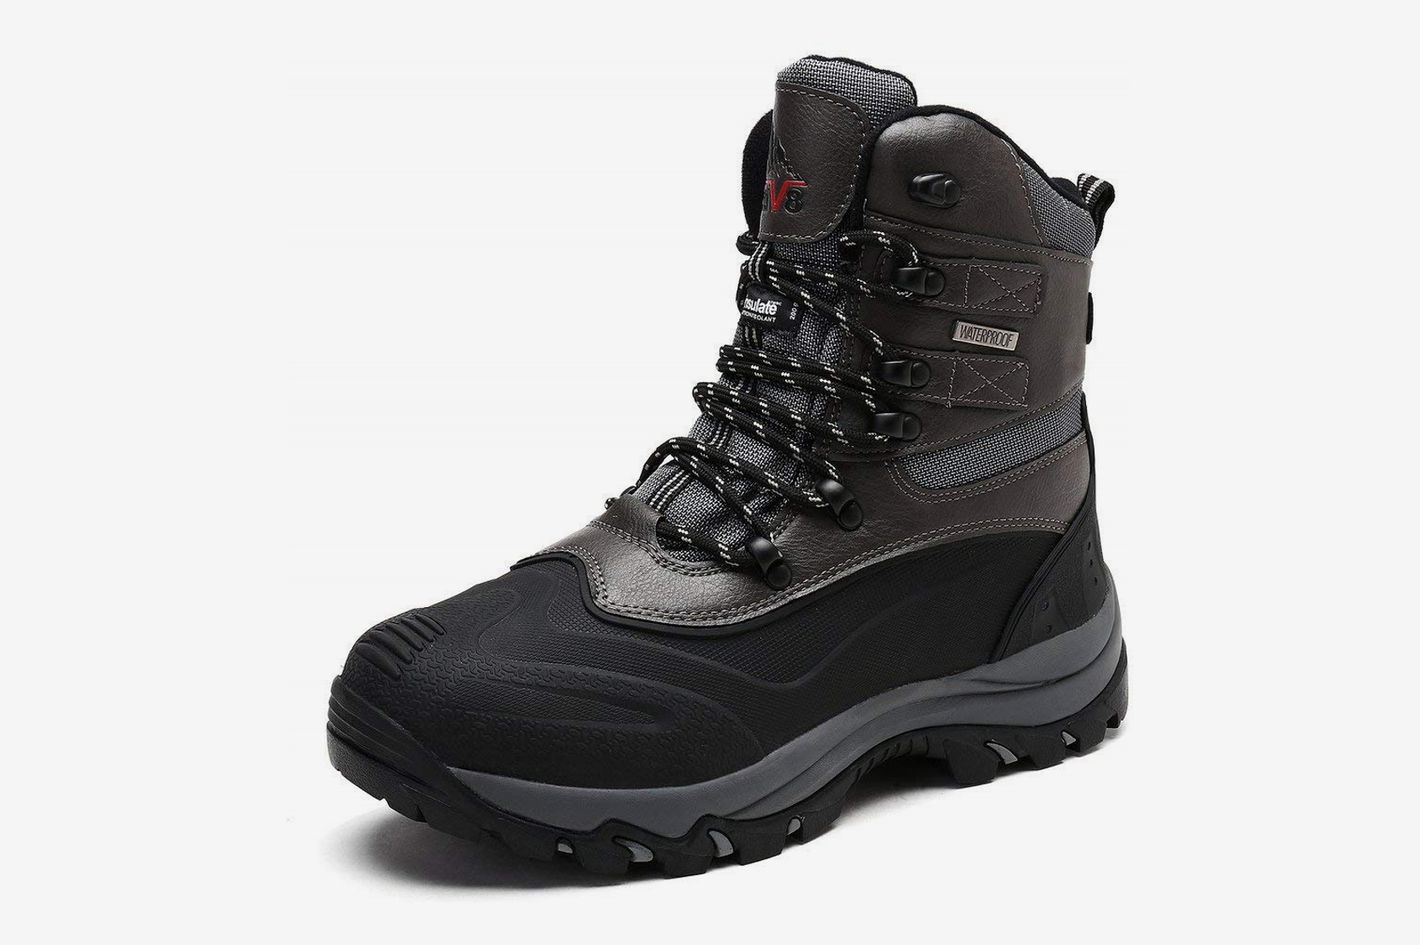 competitive price cee4b 4b472 Arctiv8 Men s Insulated Waterproof Construction Rubber Sole Winter Snow  Boots. ""